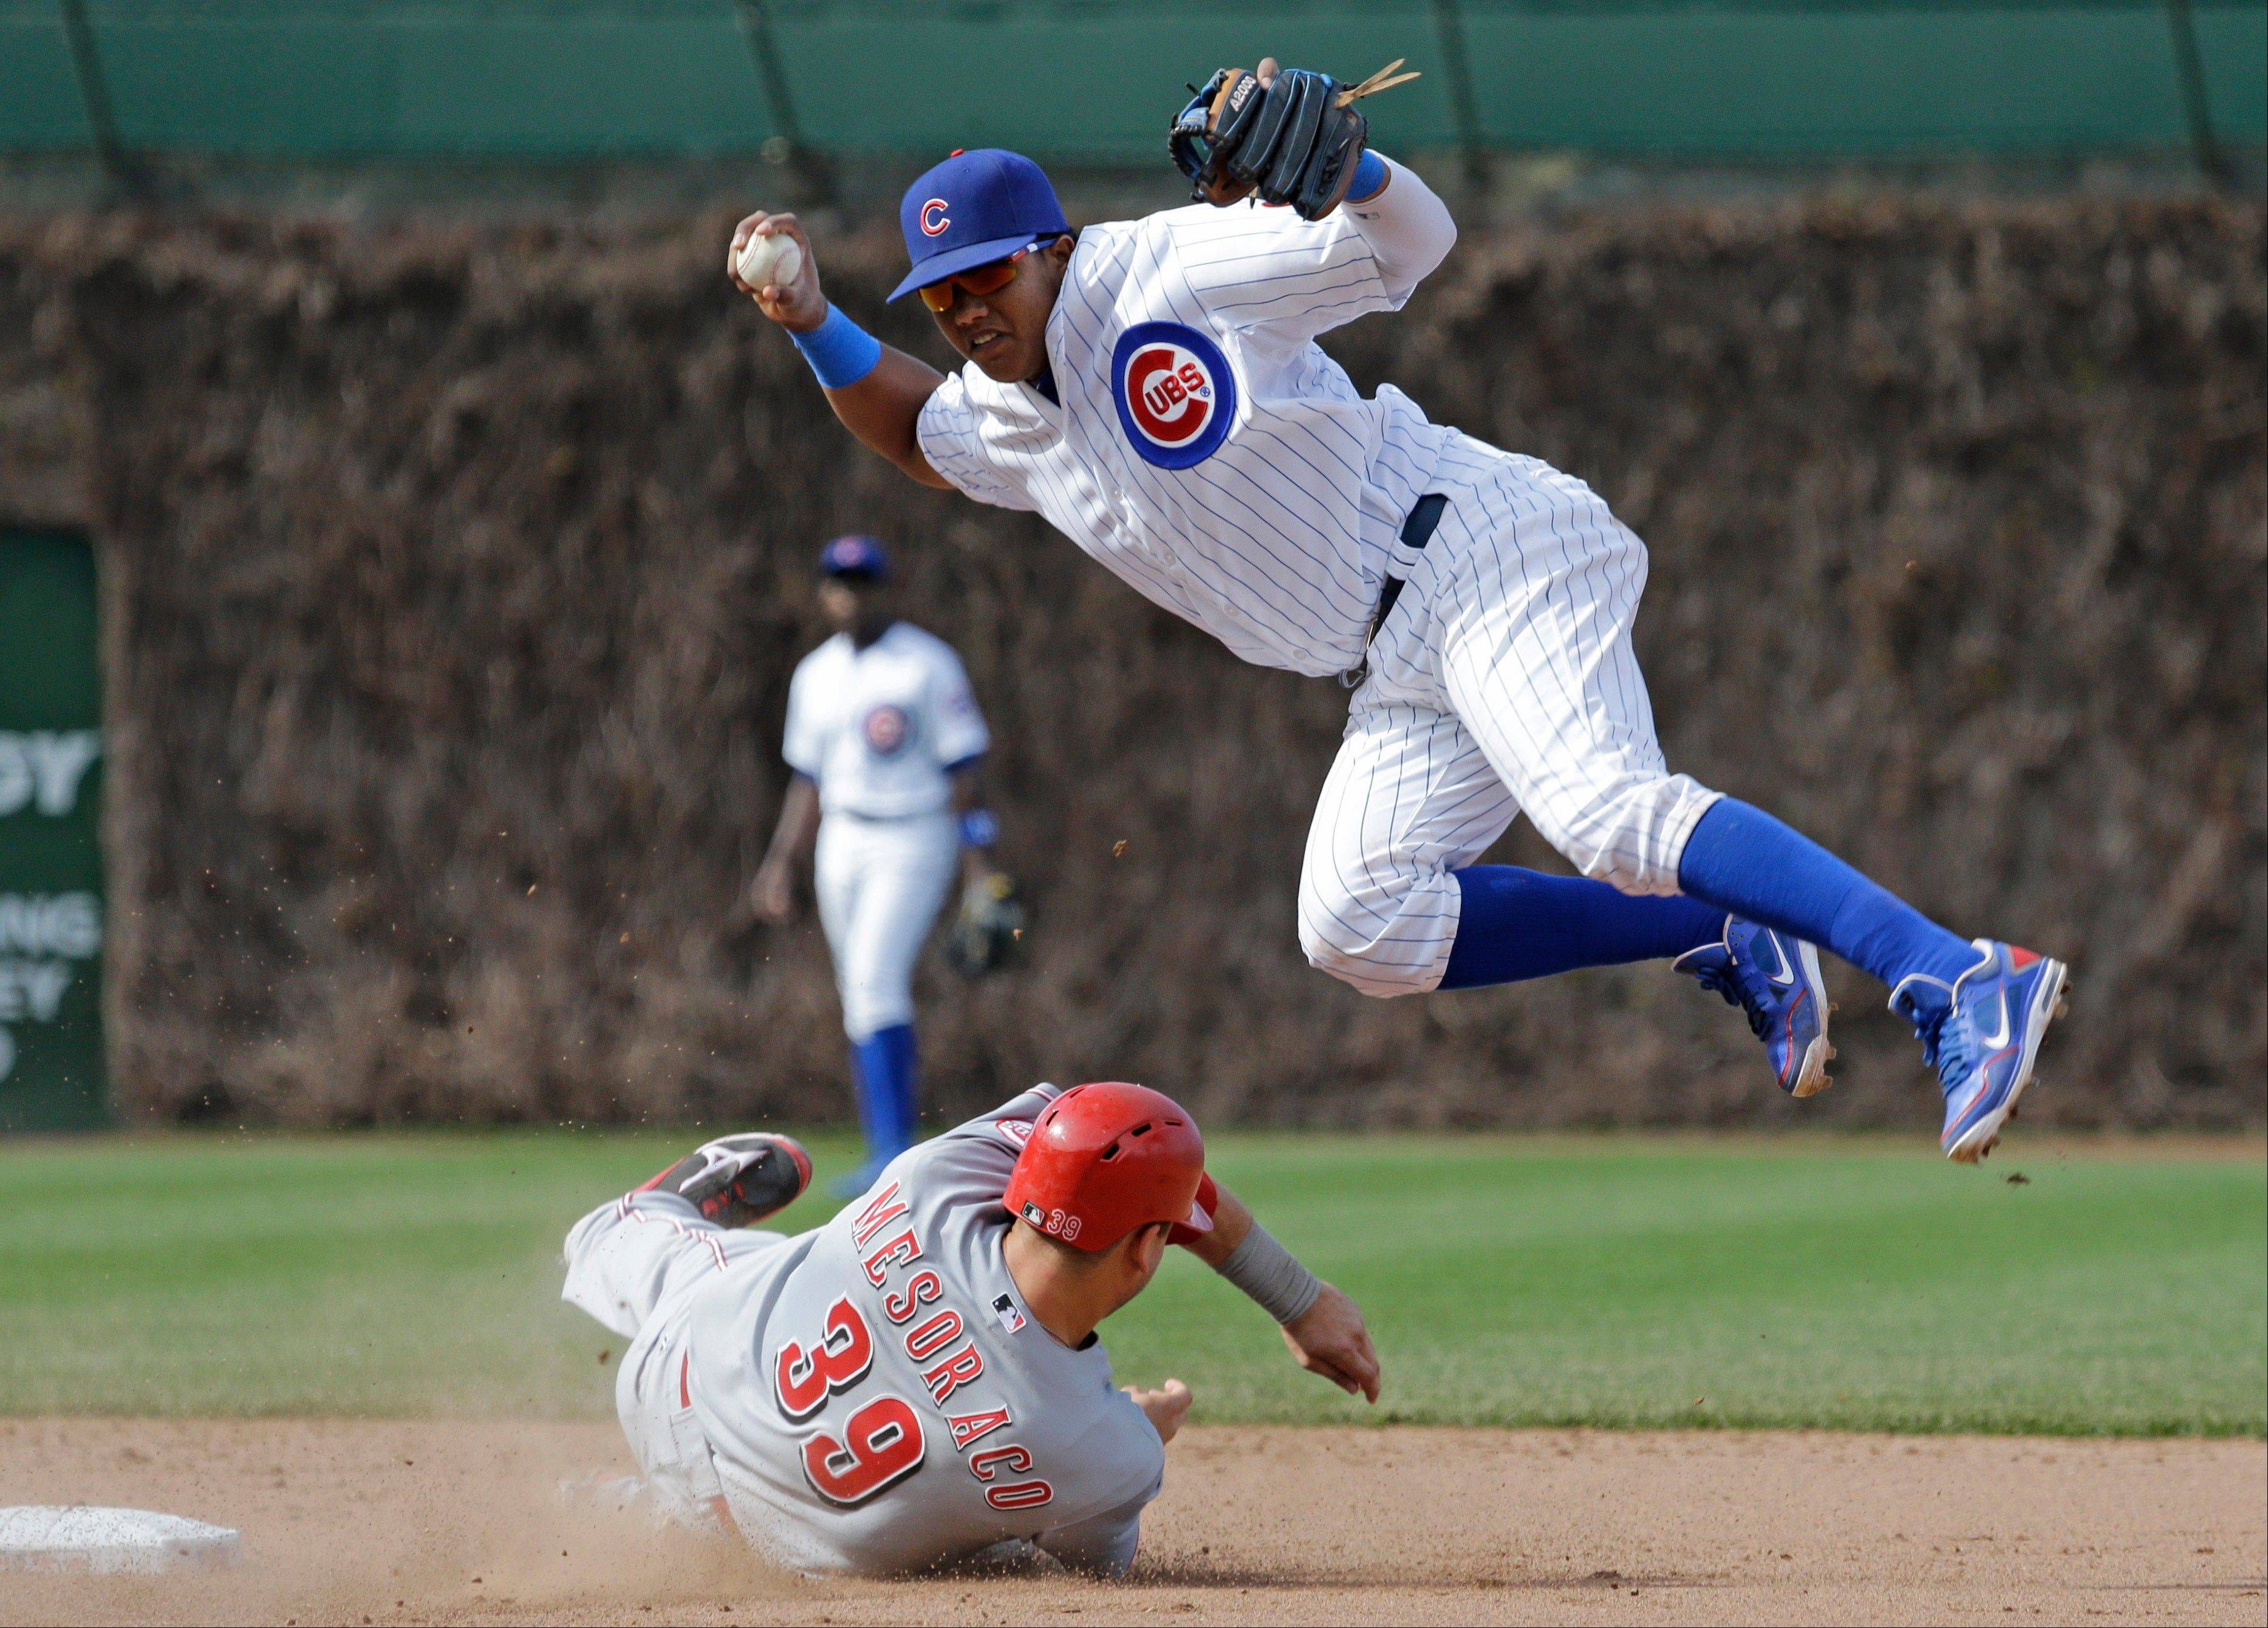 Cubs shortstop Starlin Castro, top, jumps after forcing out Cincinnati Reds' Devin Mesoraco during the eighth inning of an MLB National League baseball game in Chicago, Sunday, May 5, 2013. Cincinnati Reds' Donald Lutz was safe at first.